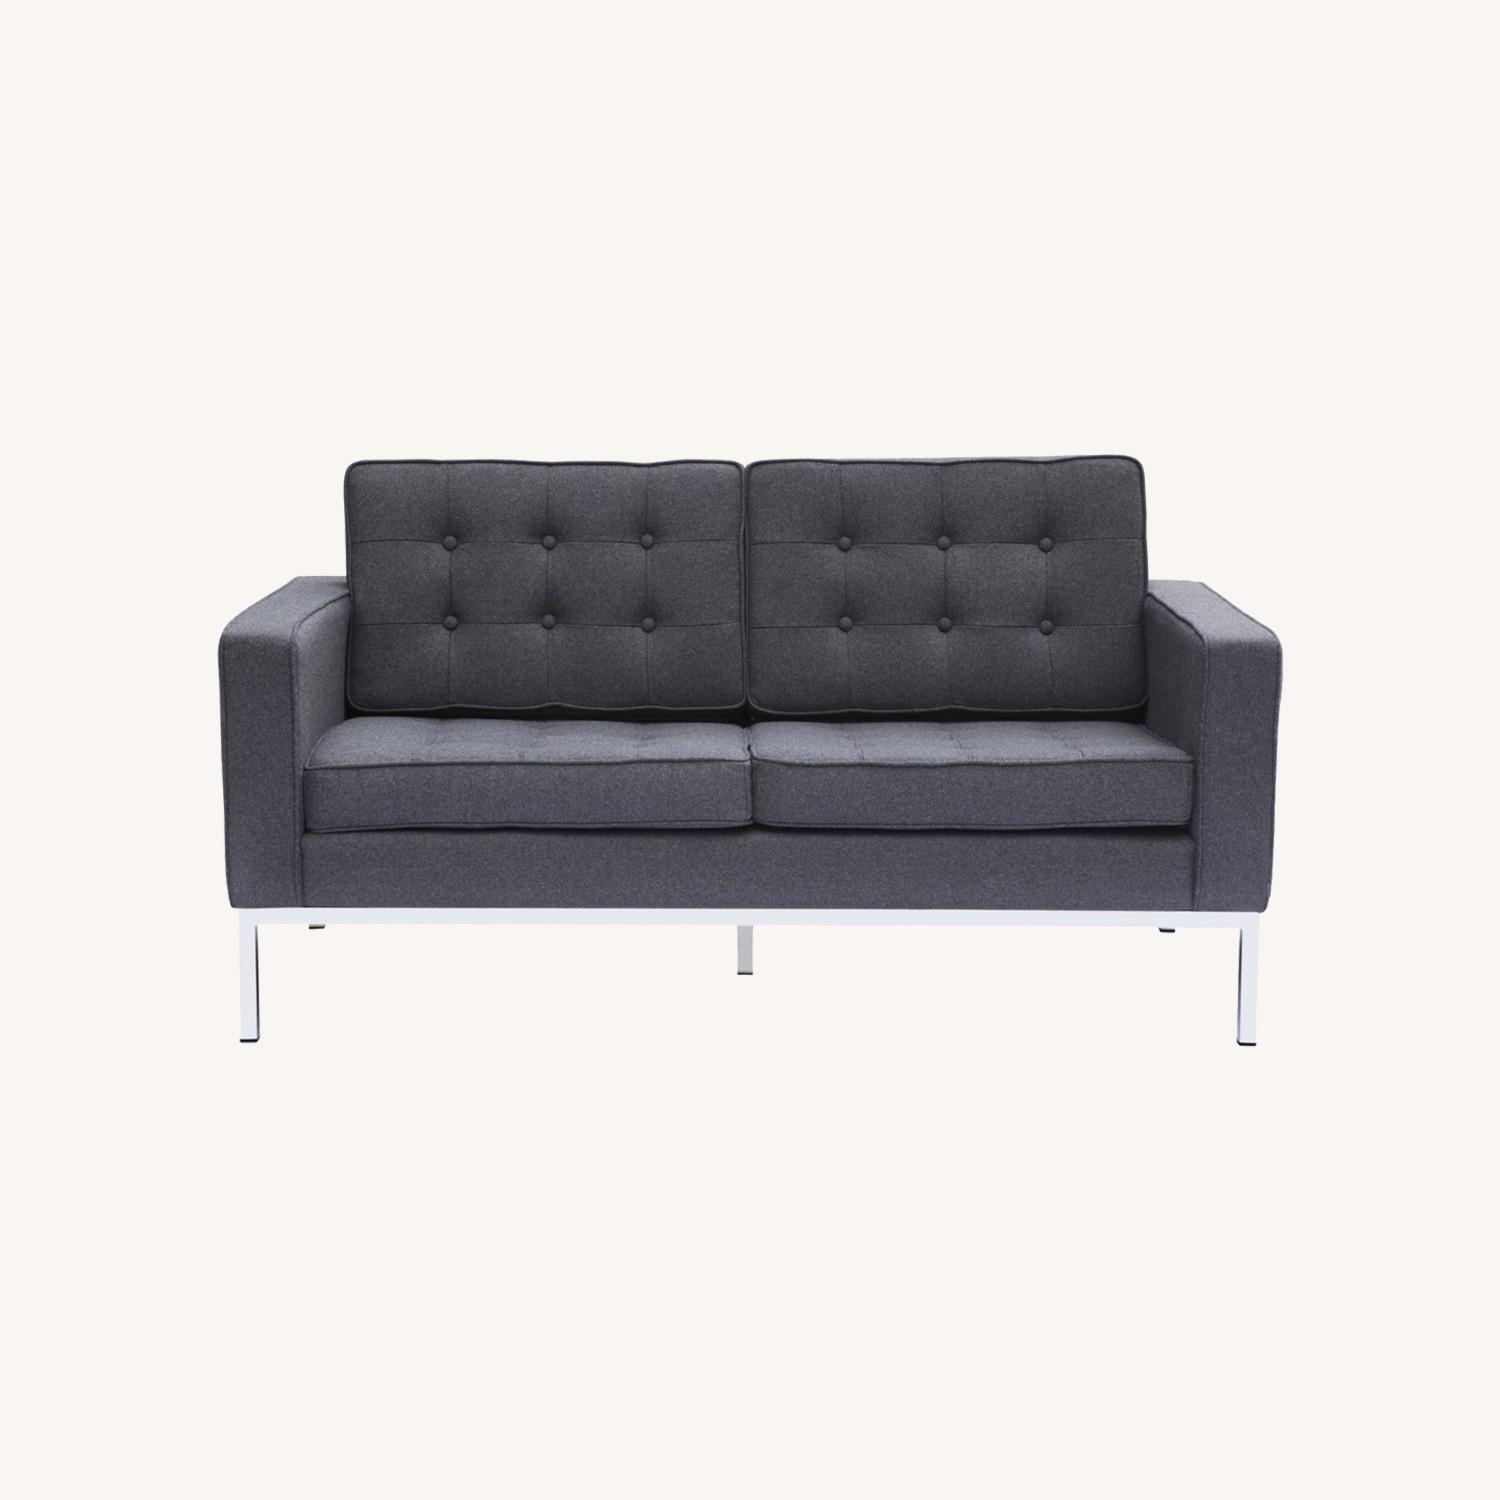 Contemporary Loveseat In Gray Wool Fabric - image-7